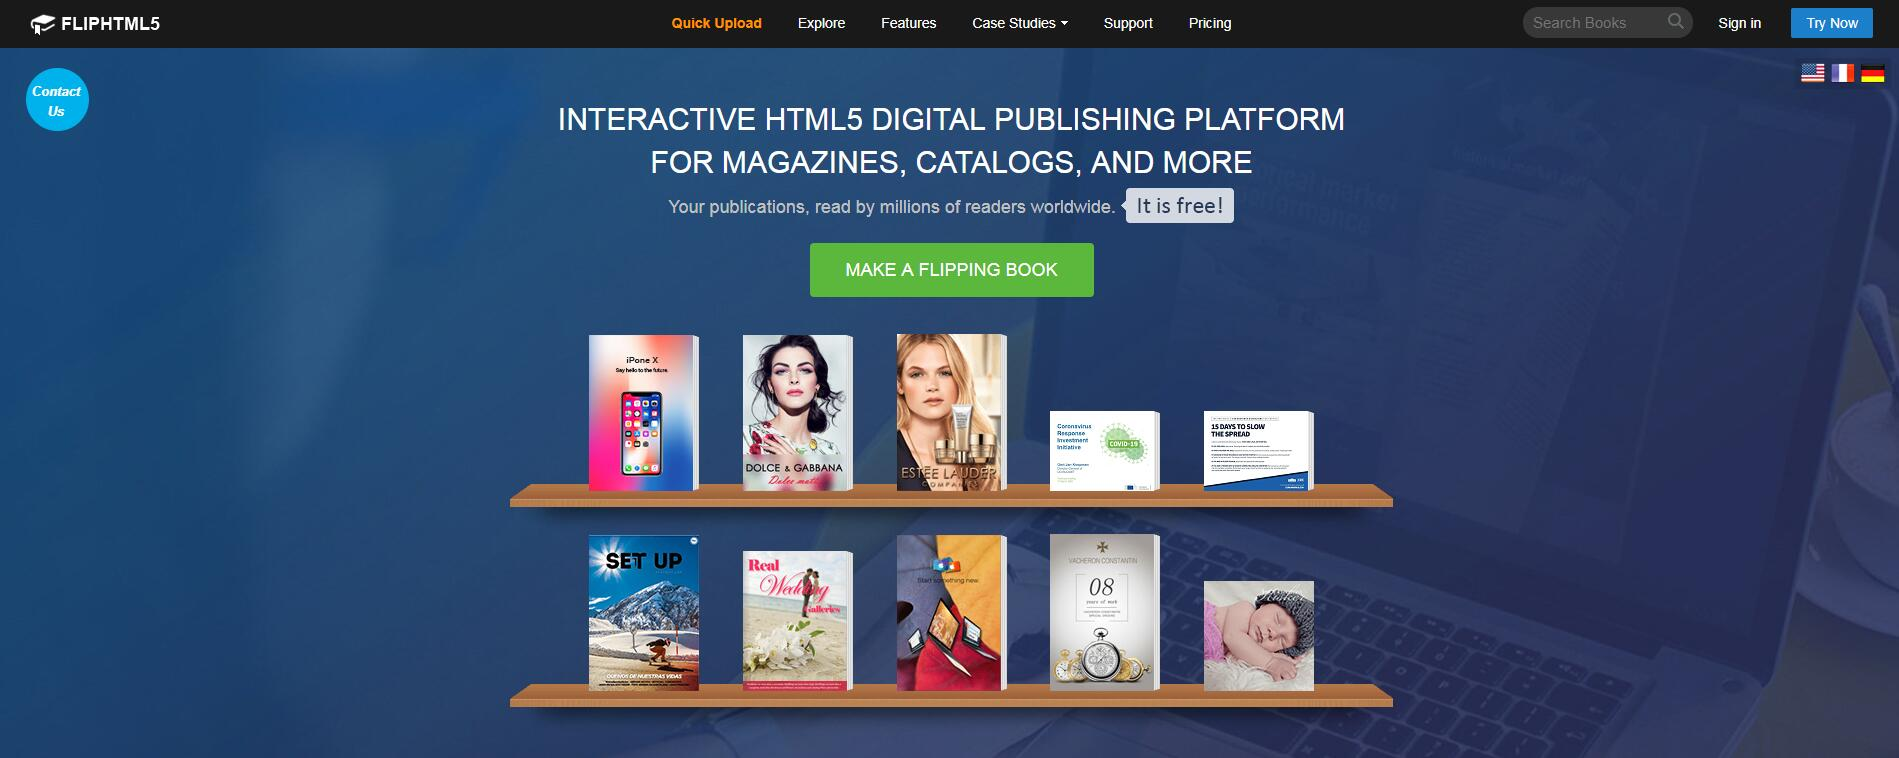 FlipHTML5 Releases a Digital Publishing Blog for Content Marketing